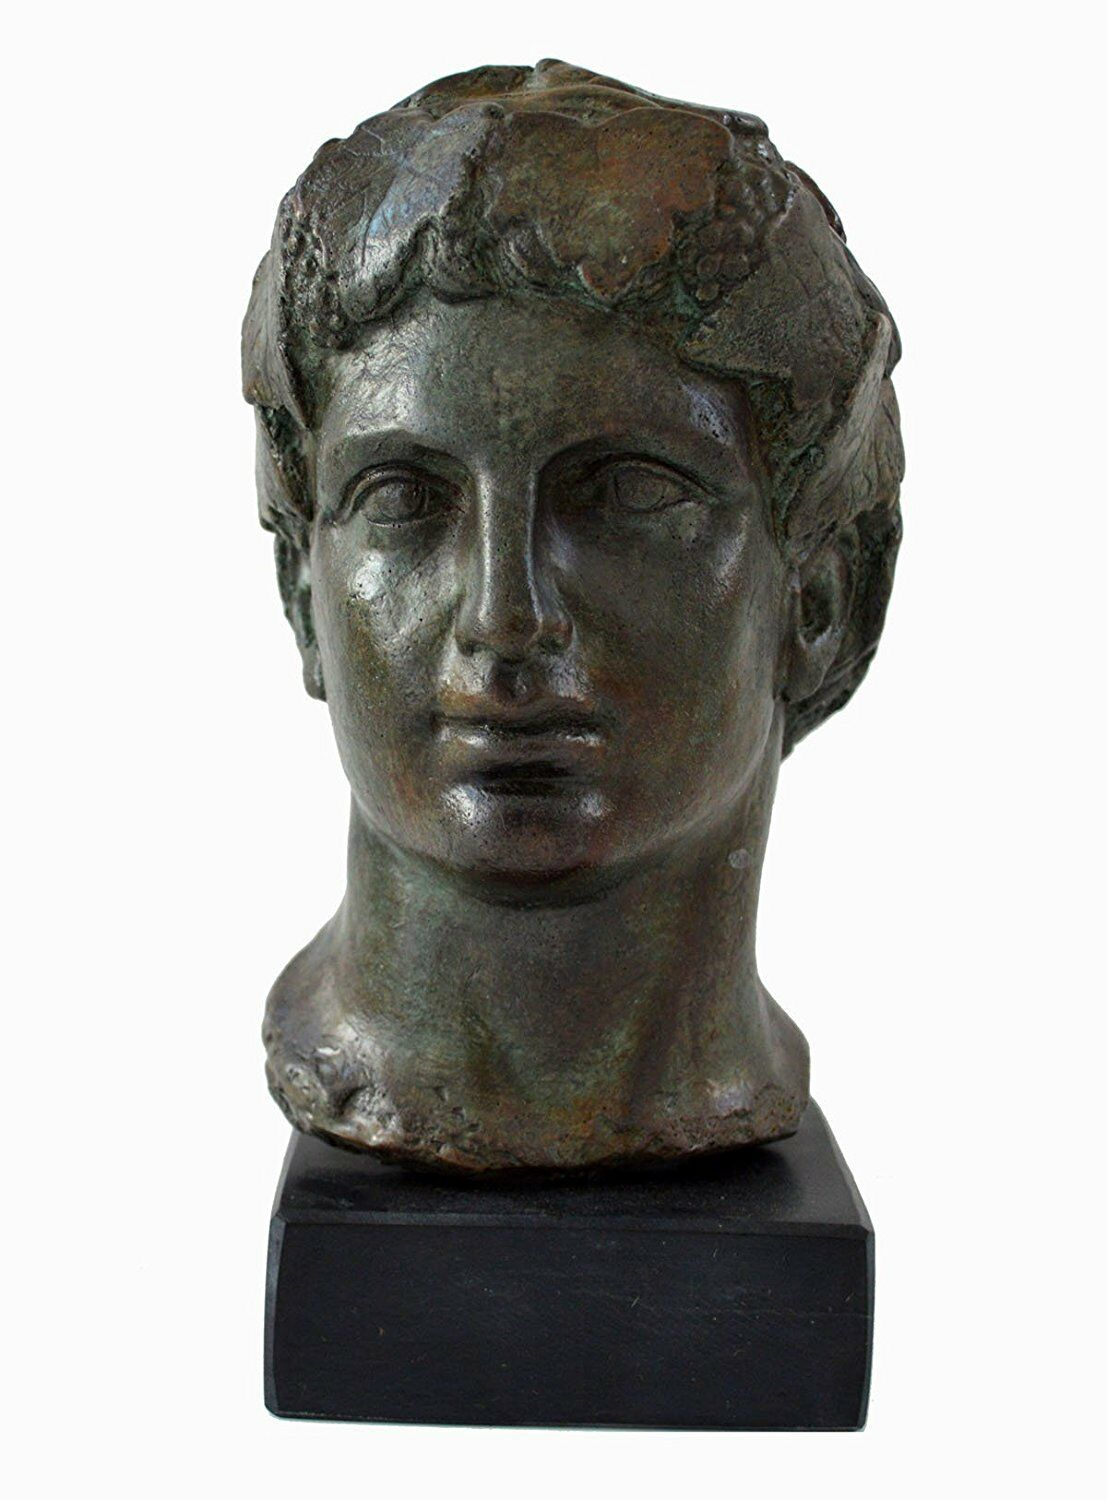 Dionysos bust with bronze Farbe effect - Dionysus God of wine and ecstasy